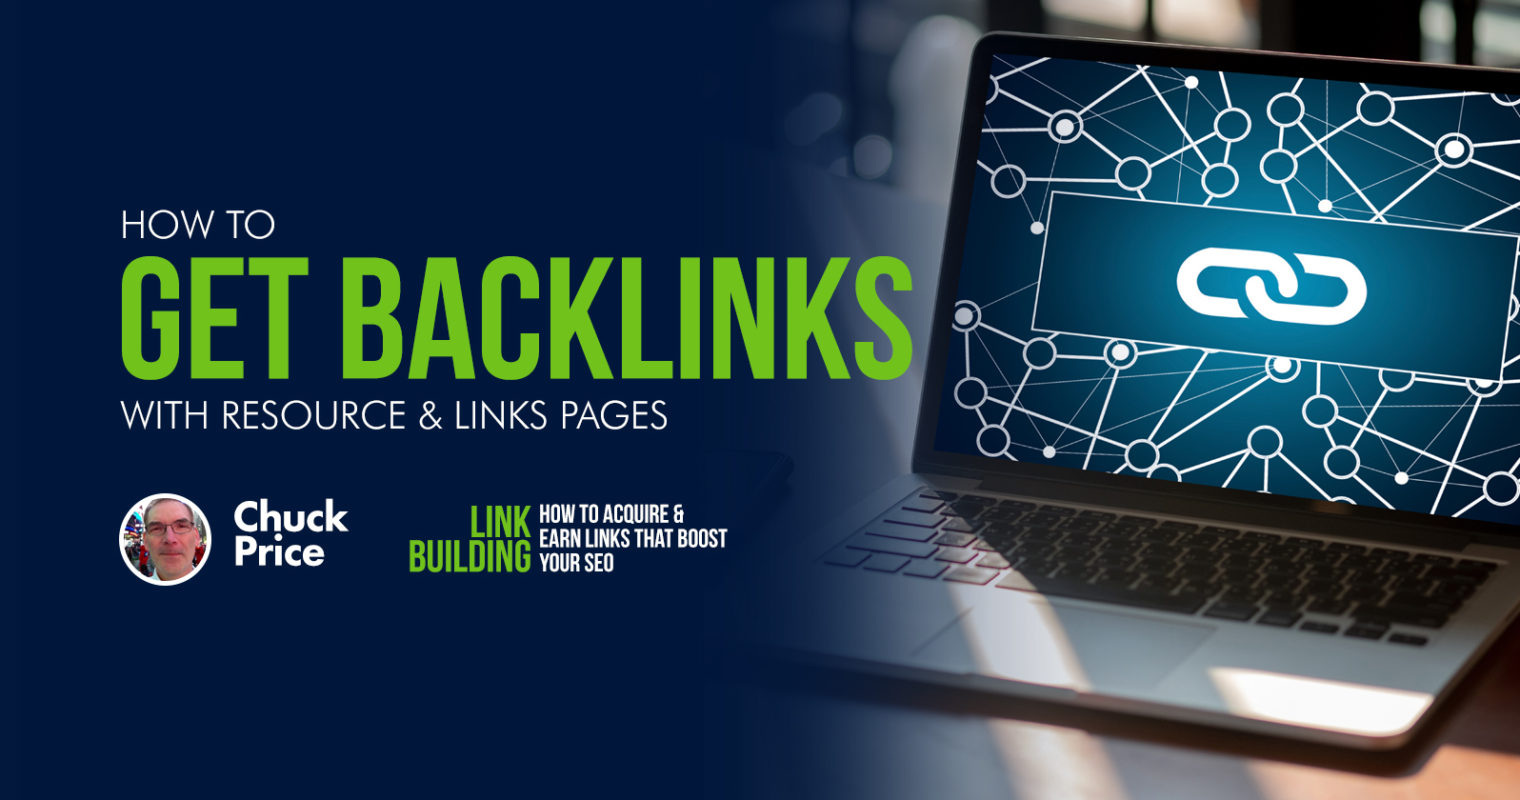 How to Get Backlinks with Resource & Links Pages